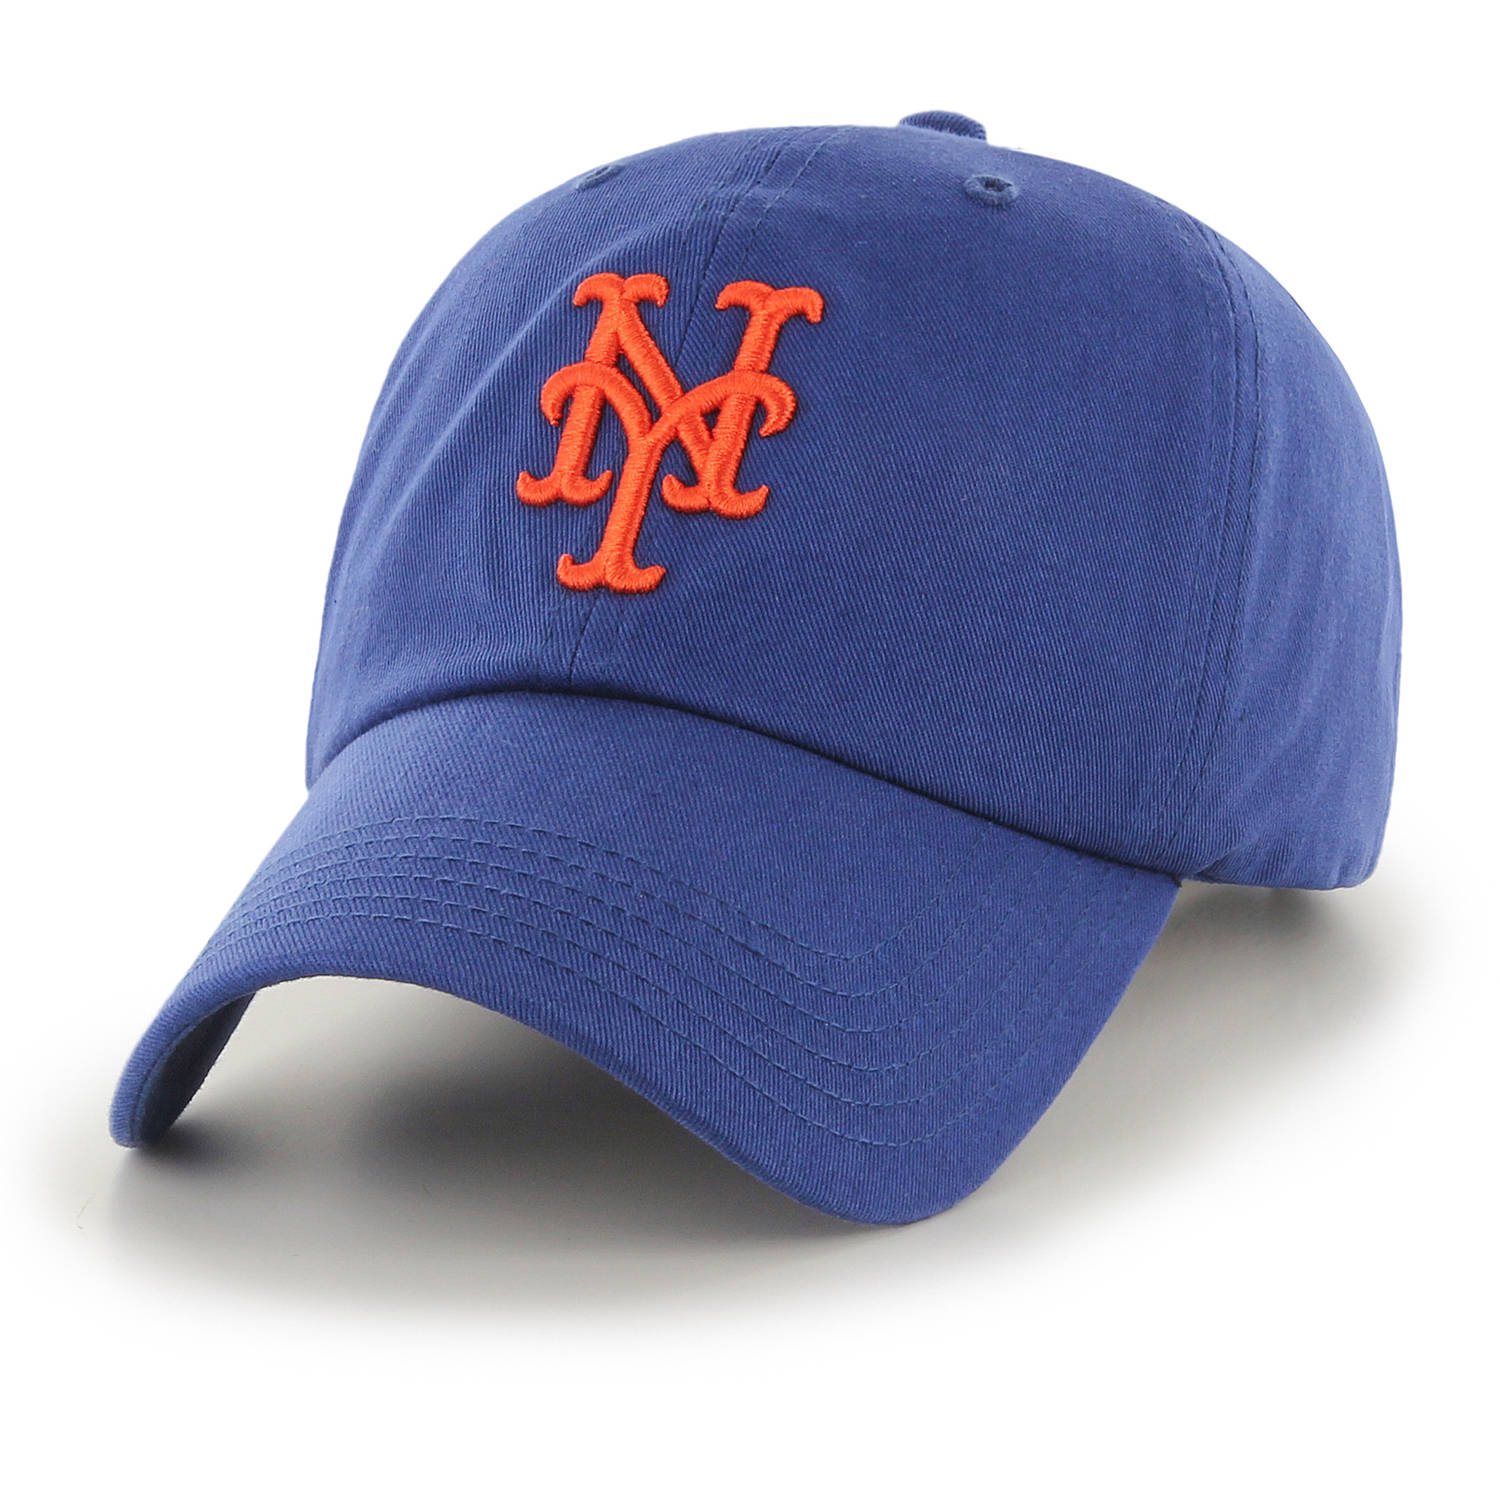 MLB New York Mets Clean Up Cap / Hat by Fan Favorite